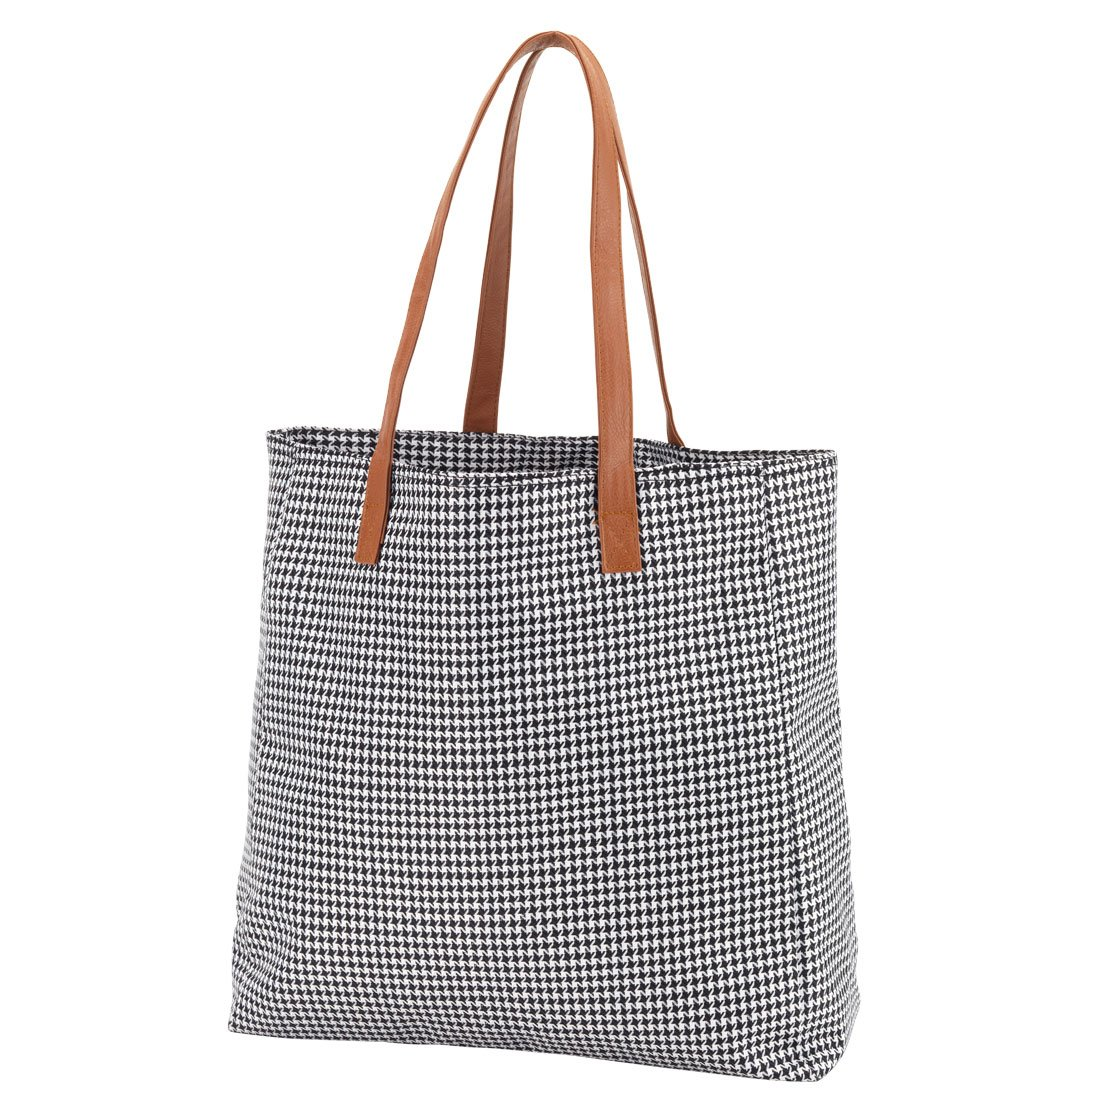 Amazon.com  High Fashion Houndstooth Check Tote Bag - Personalization  Available  Clothing 5da4e71d7b926